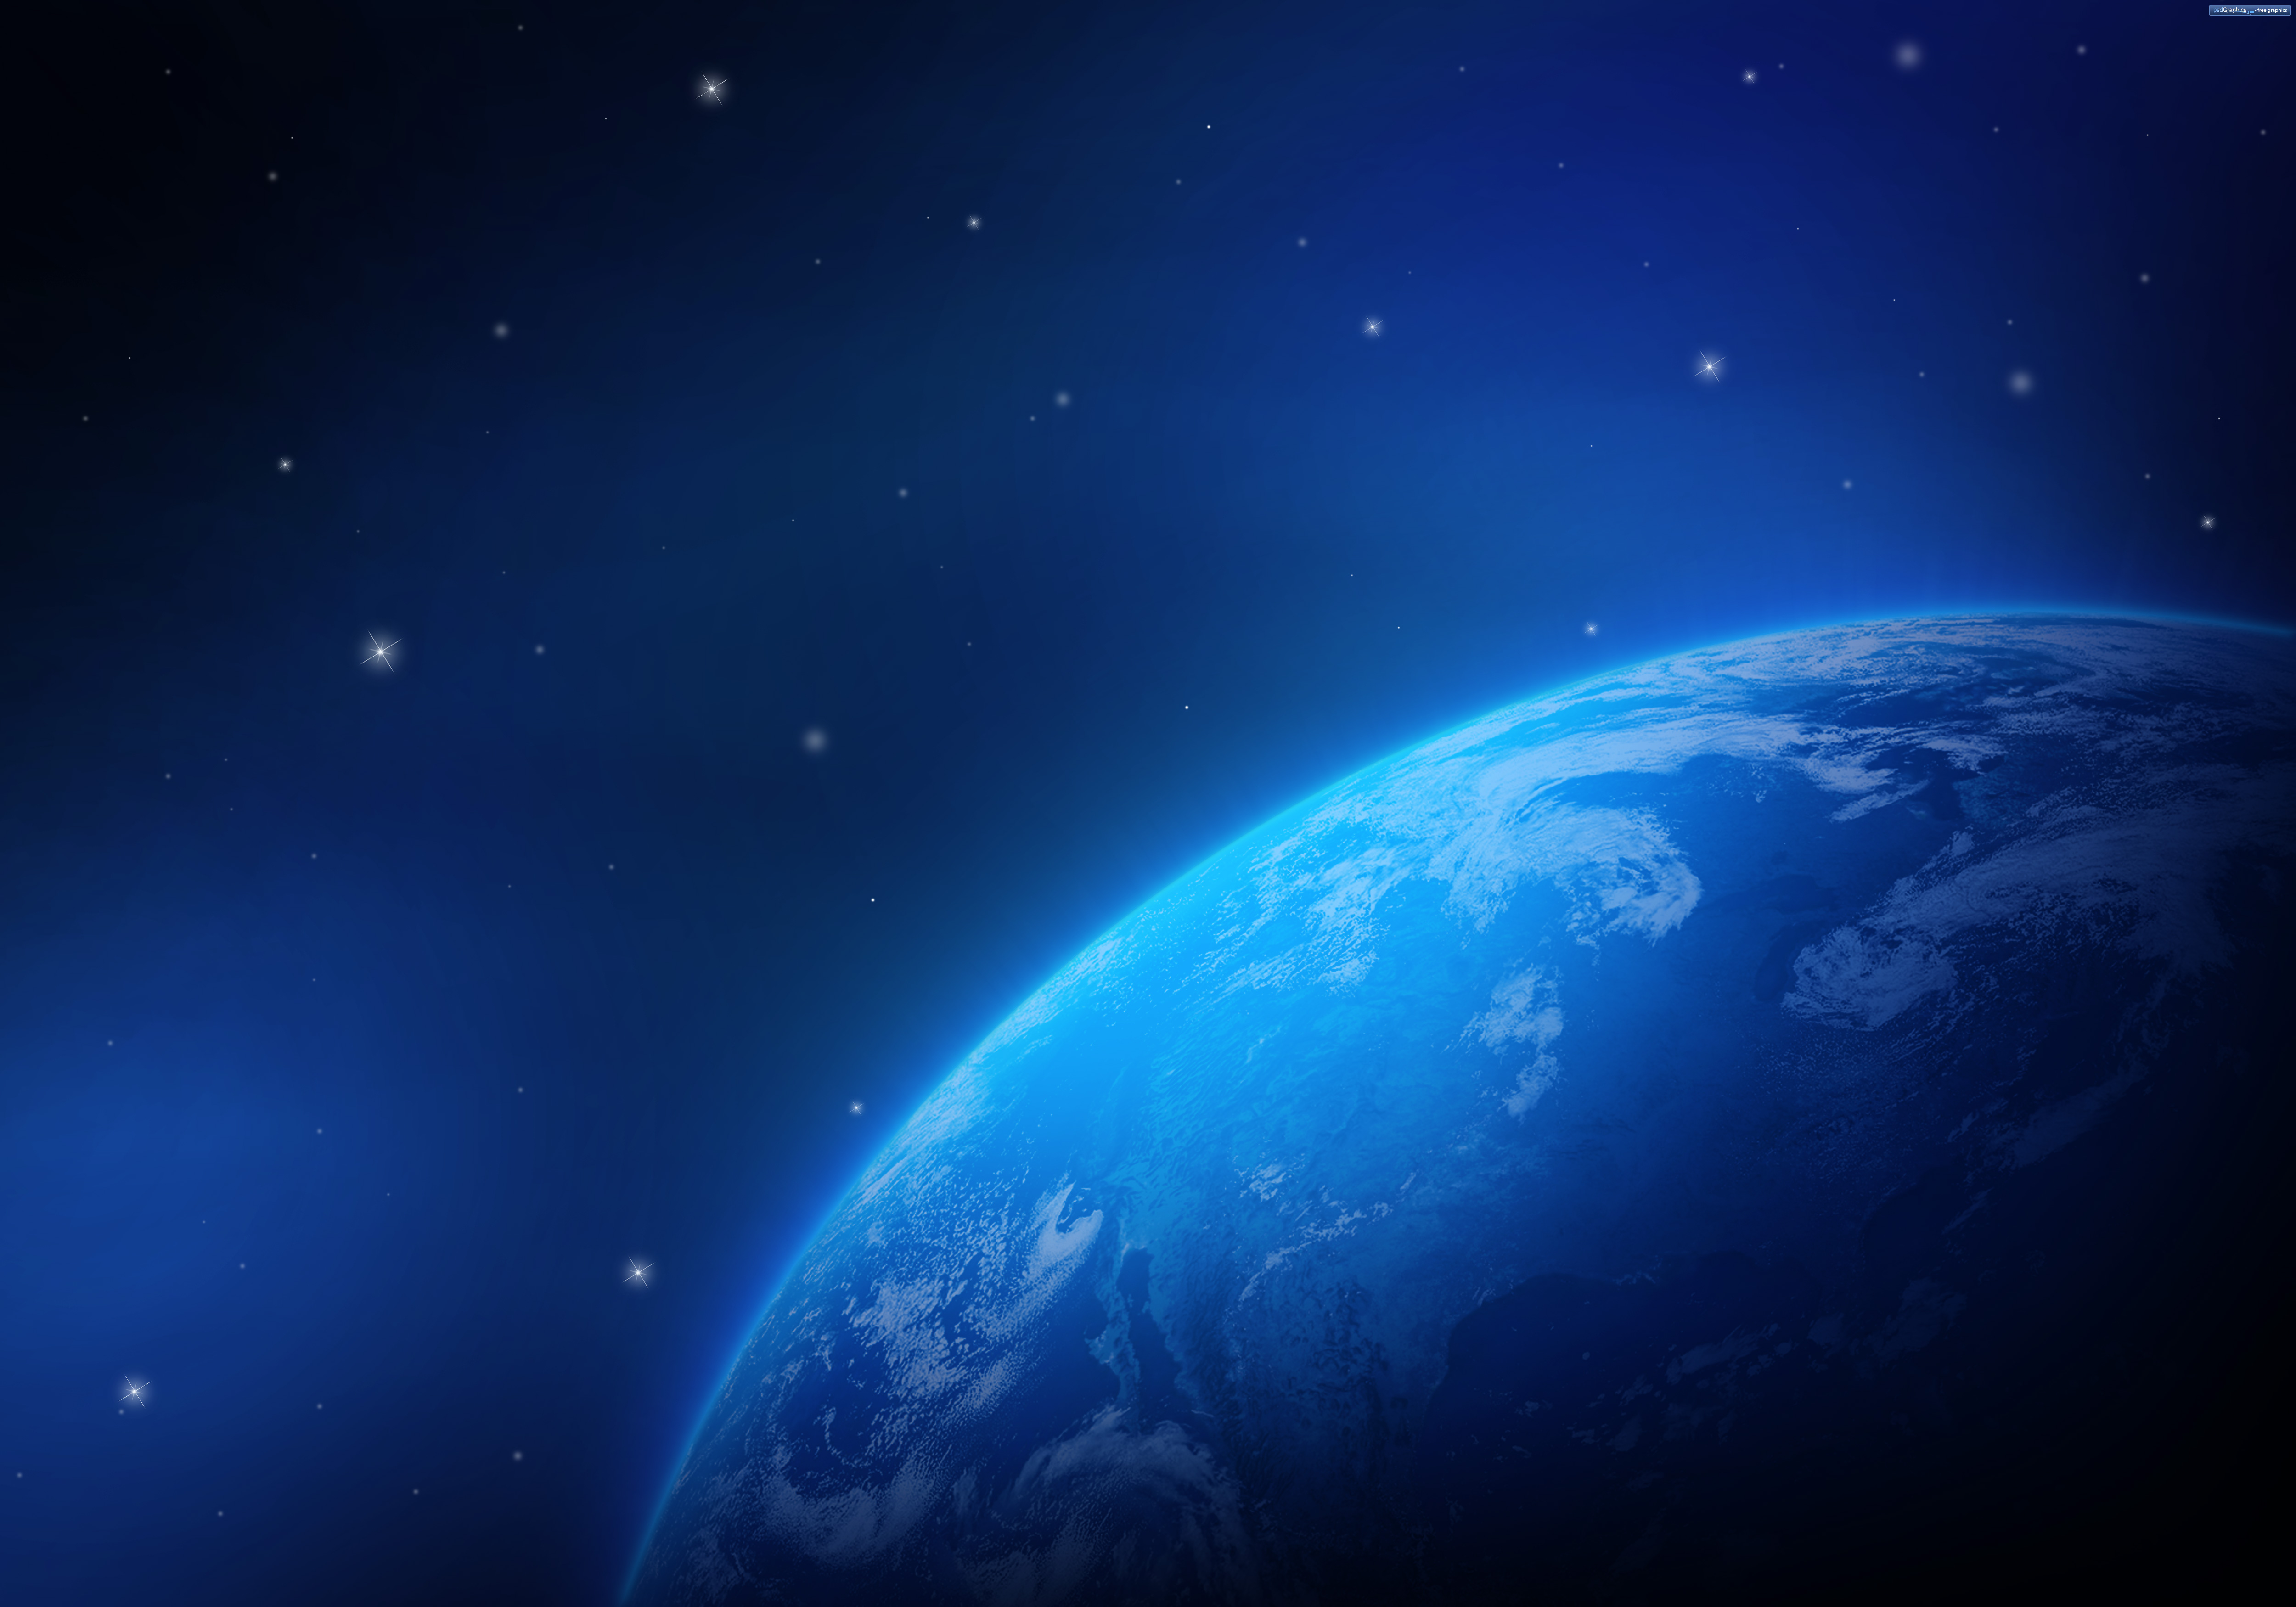 4b566dac80219blue-earth-wallpaper.jpg